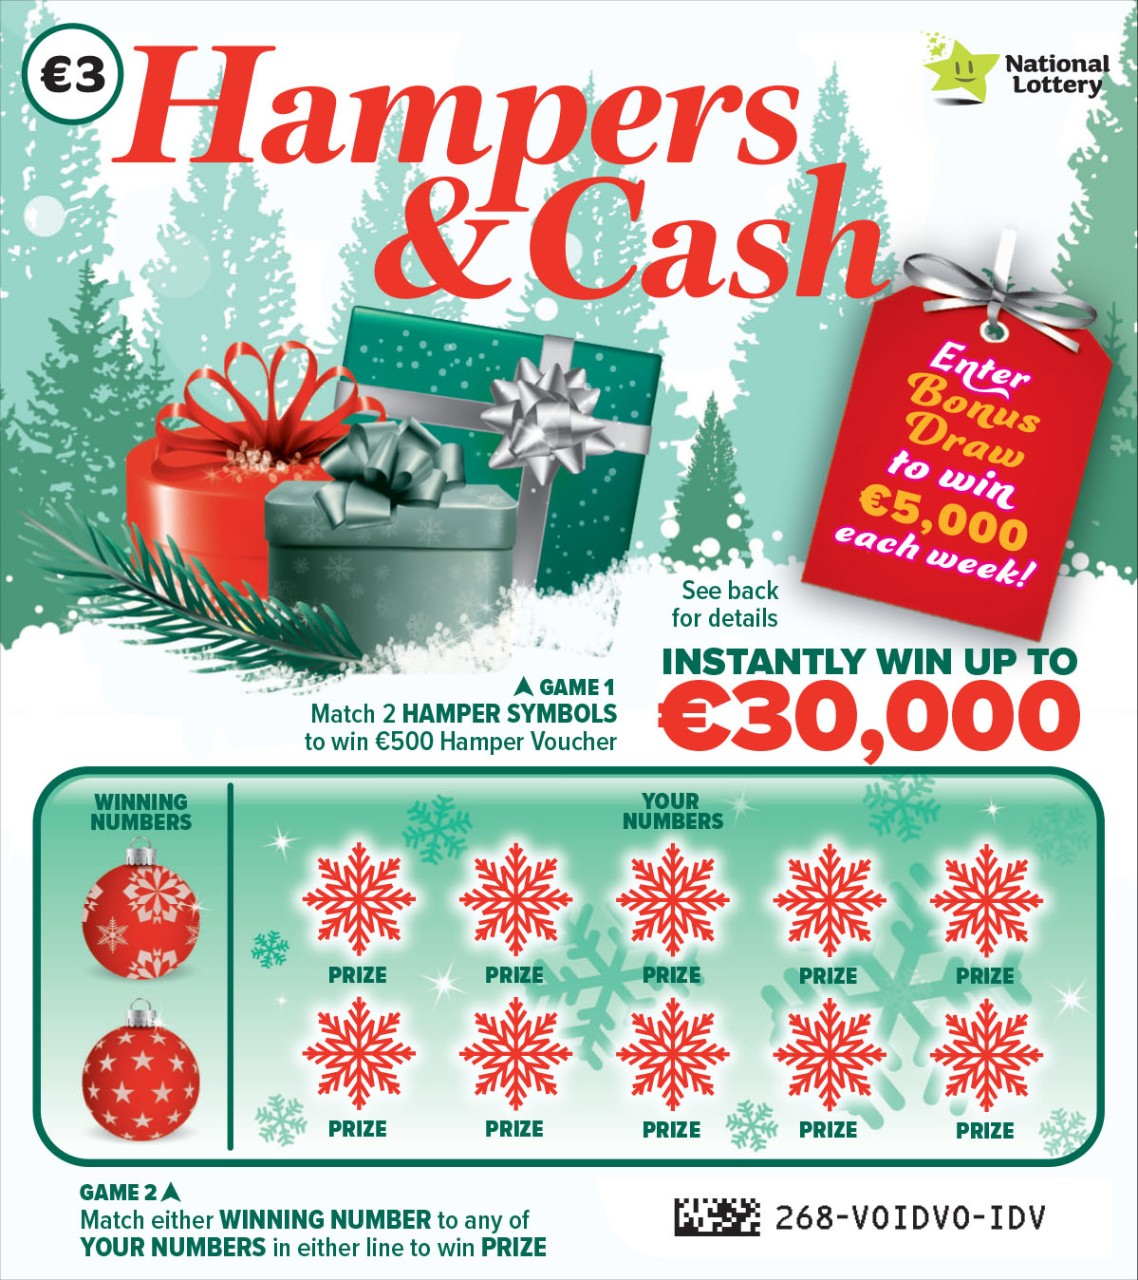 Hampers & Cash Scratch Card Sample